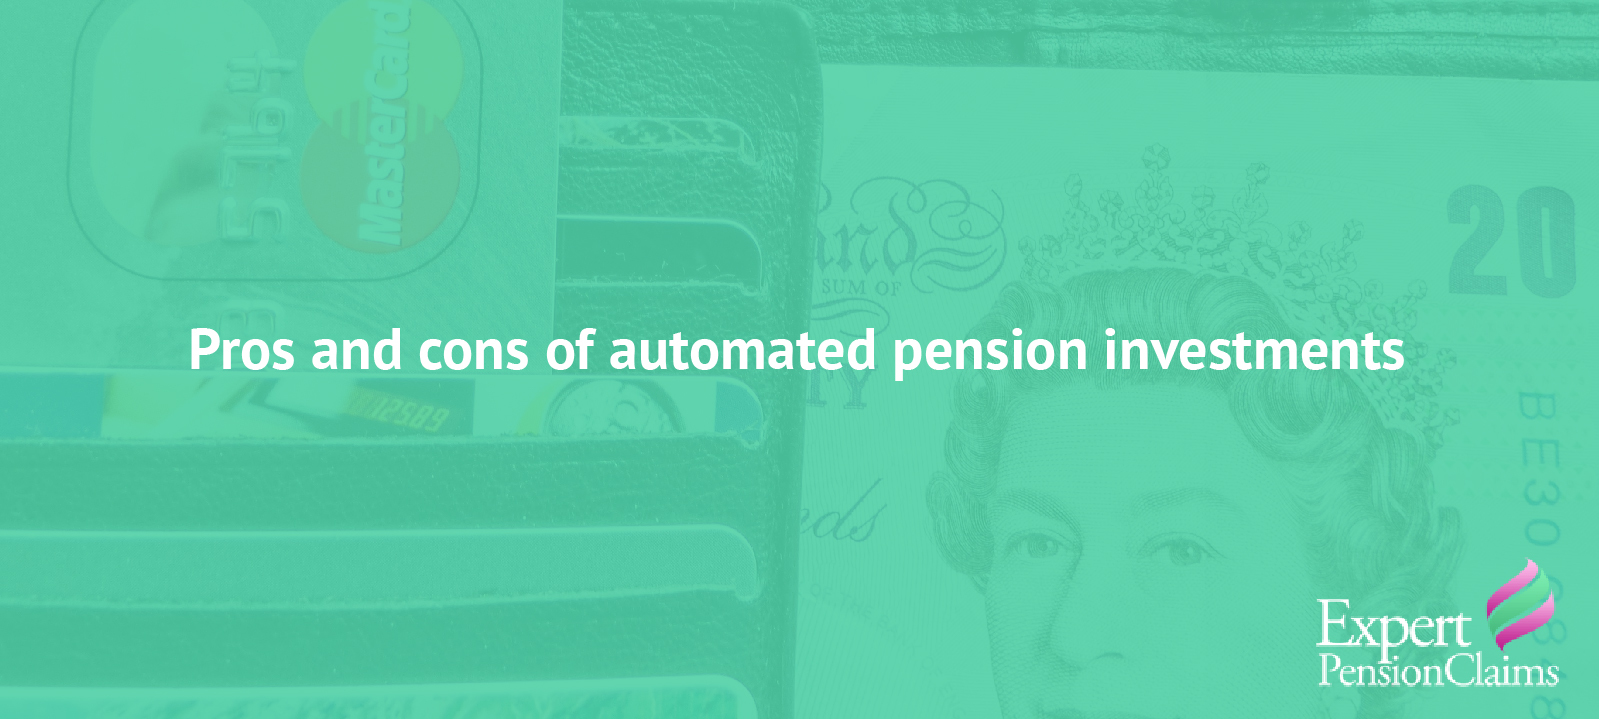 Pros and cons of auto enrolment pensions